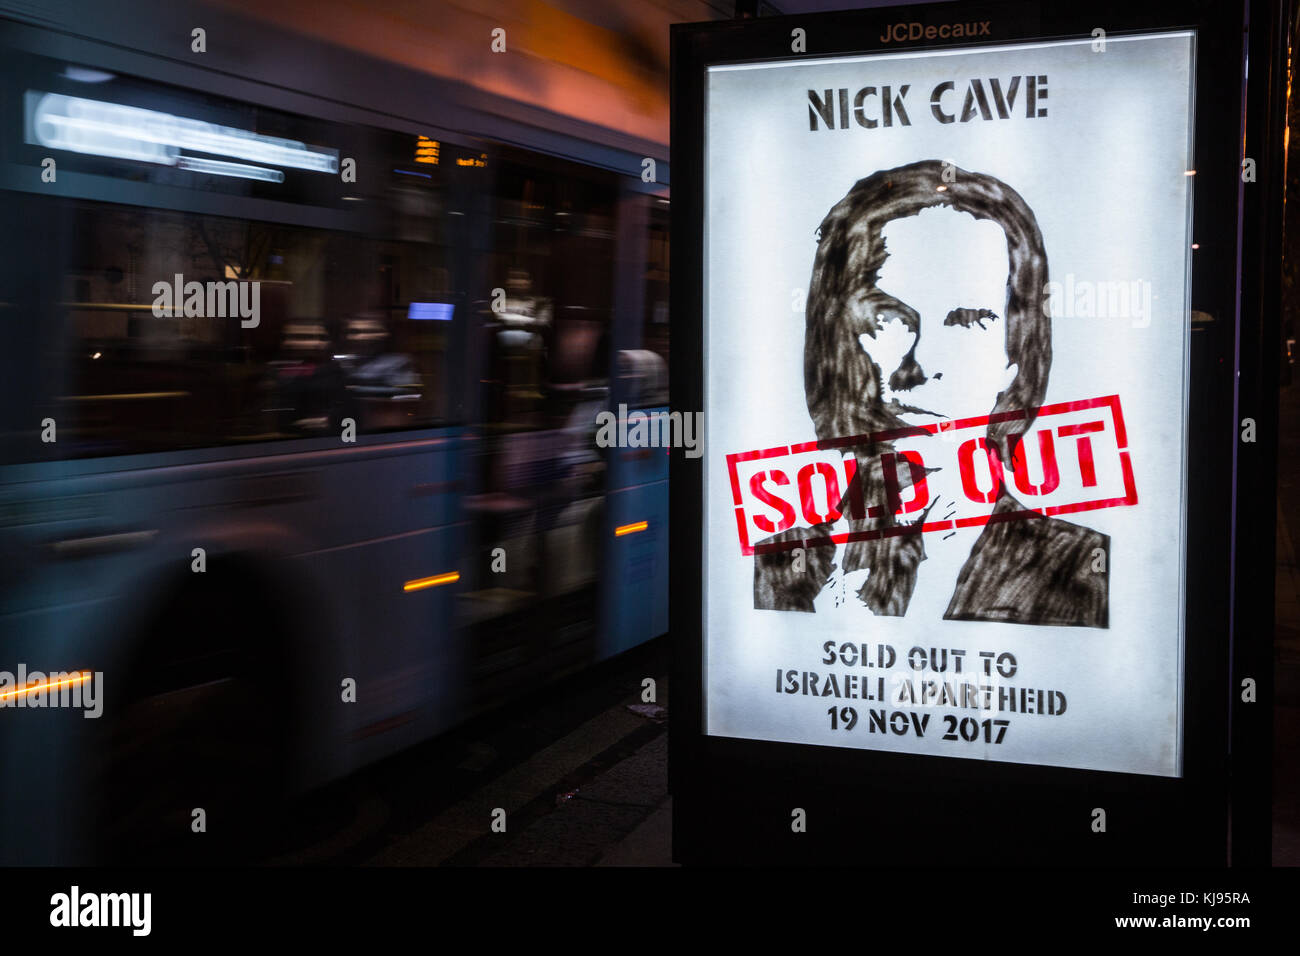 London, UK. 21st November, 2017. Protest stencils accusing Australian musician Nick Cave of 'selling out' - Stock Image